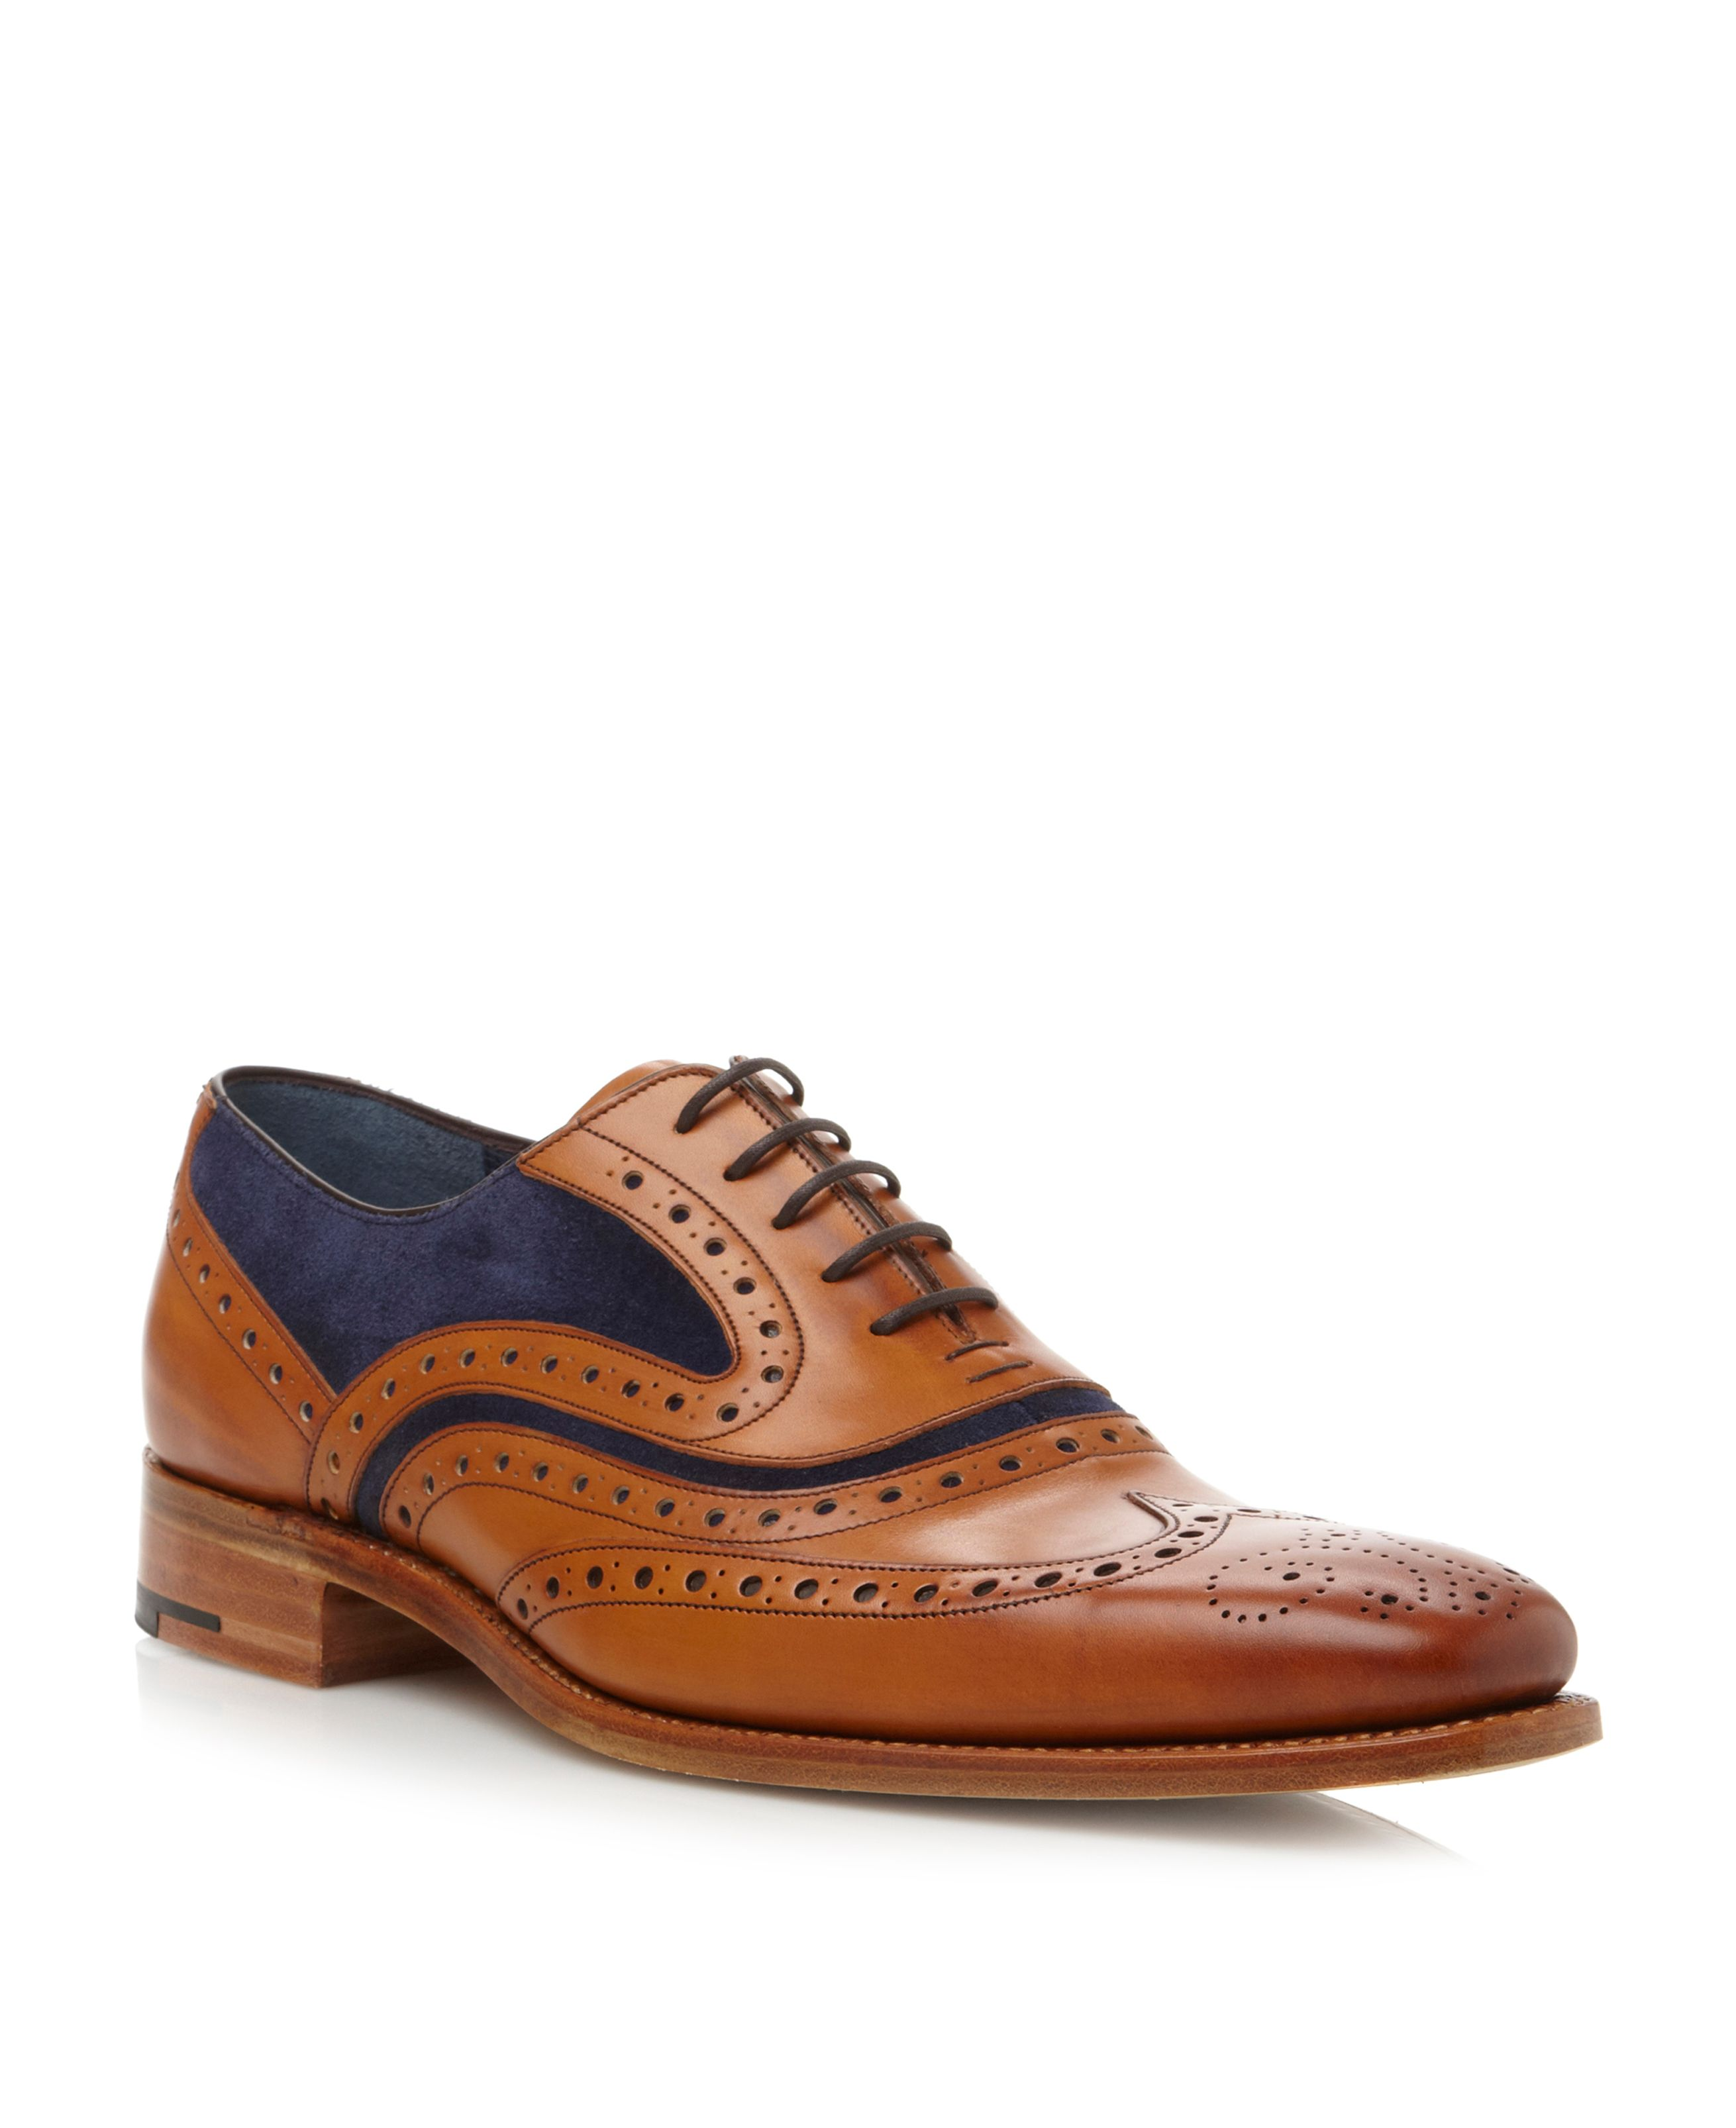 Mcclean lace up wingtip brogues